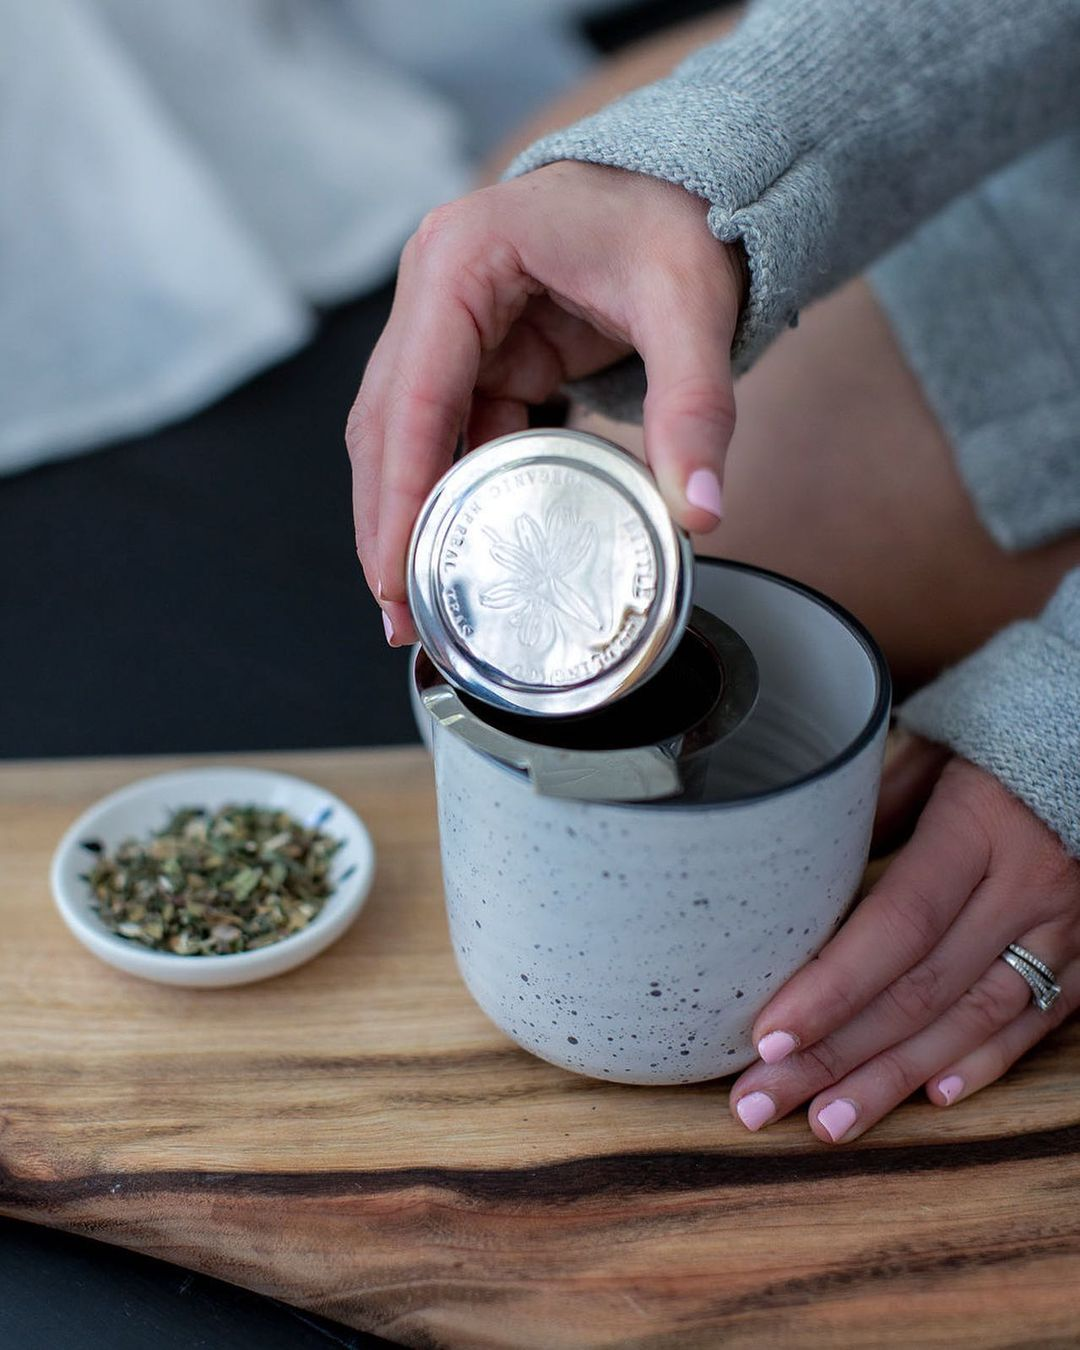 A person with pink nail polish holds a tea strainer at the edge of a ceramic mug. The strainer is branded with a floral illustration and the brand name.